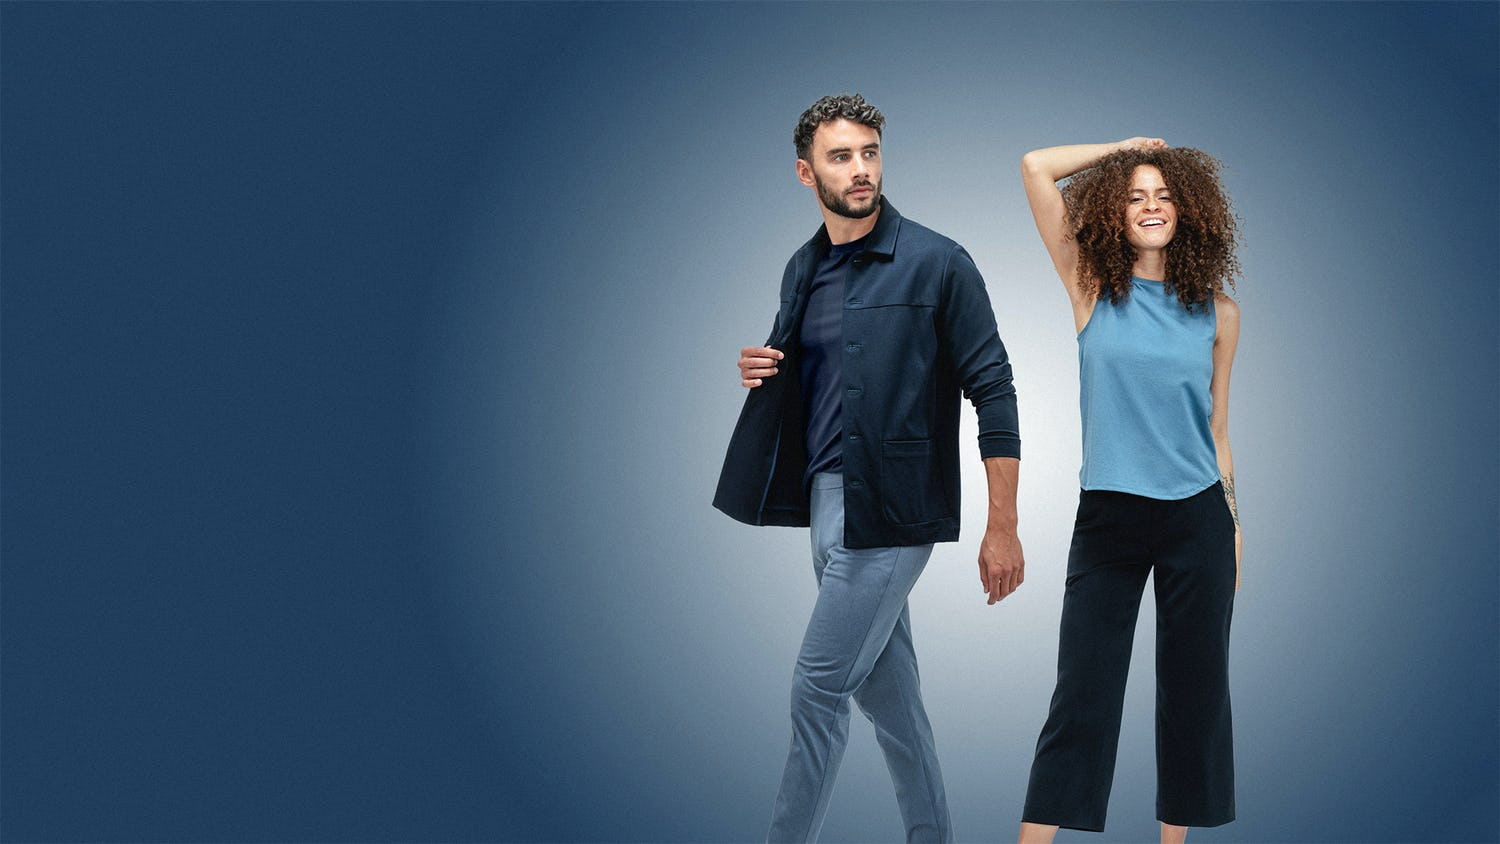 Man and woman on blue background